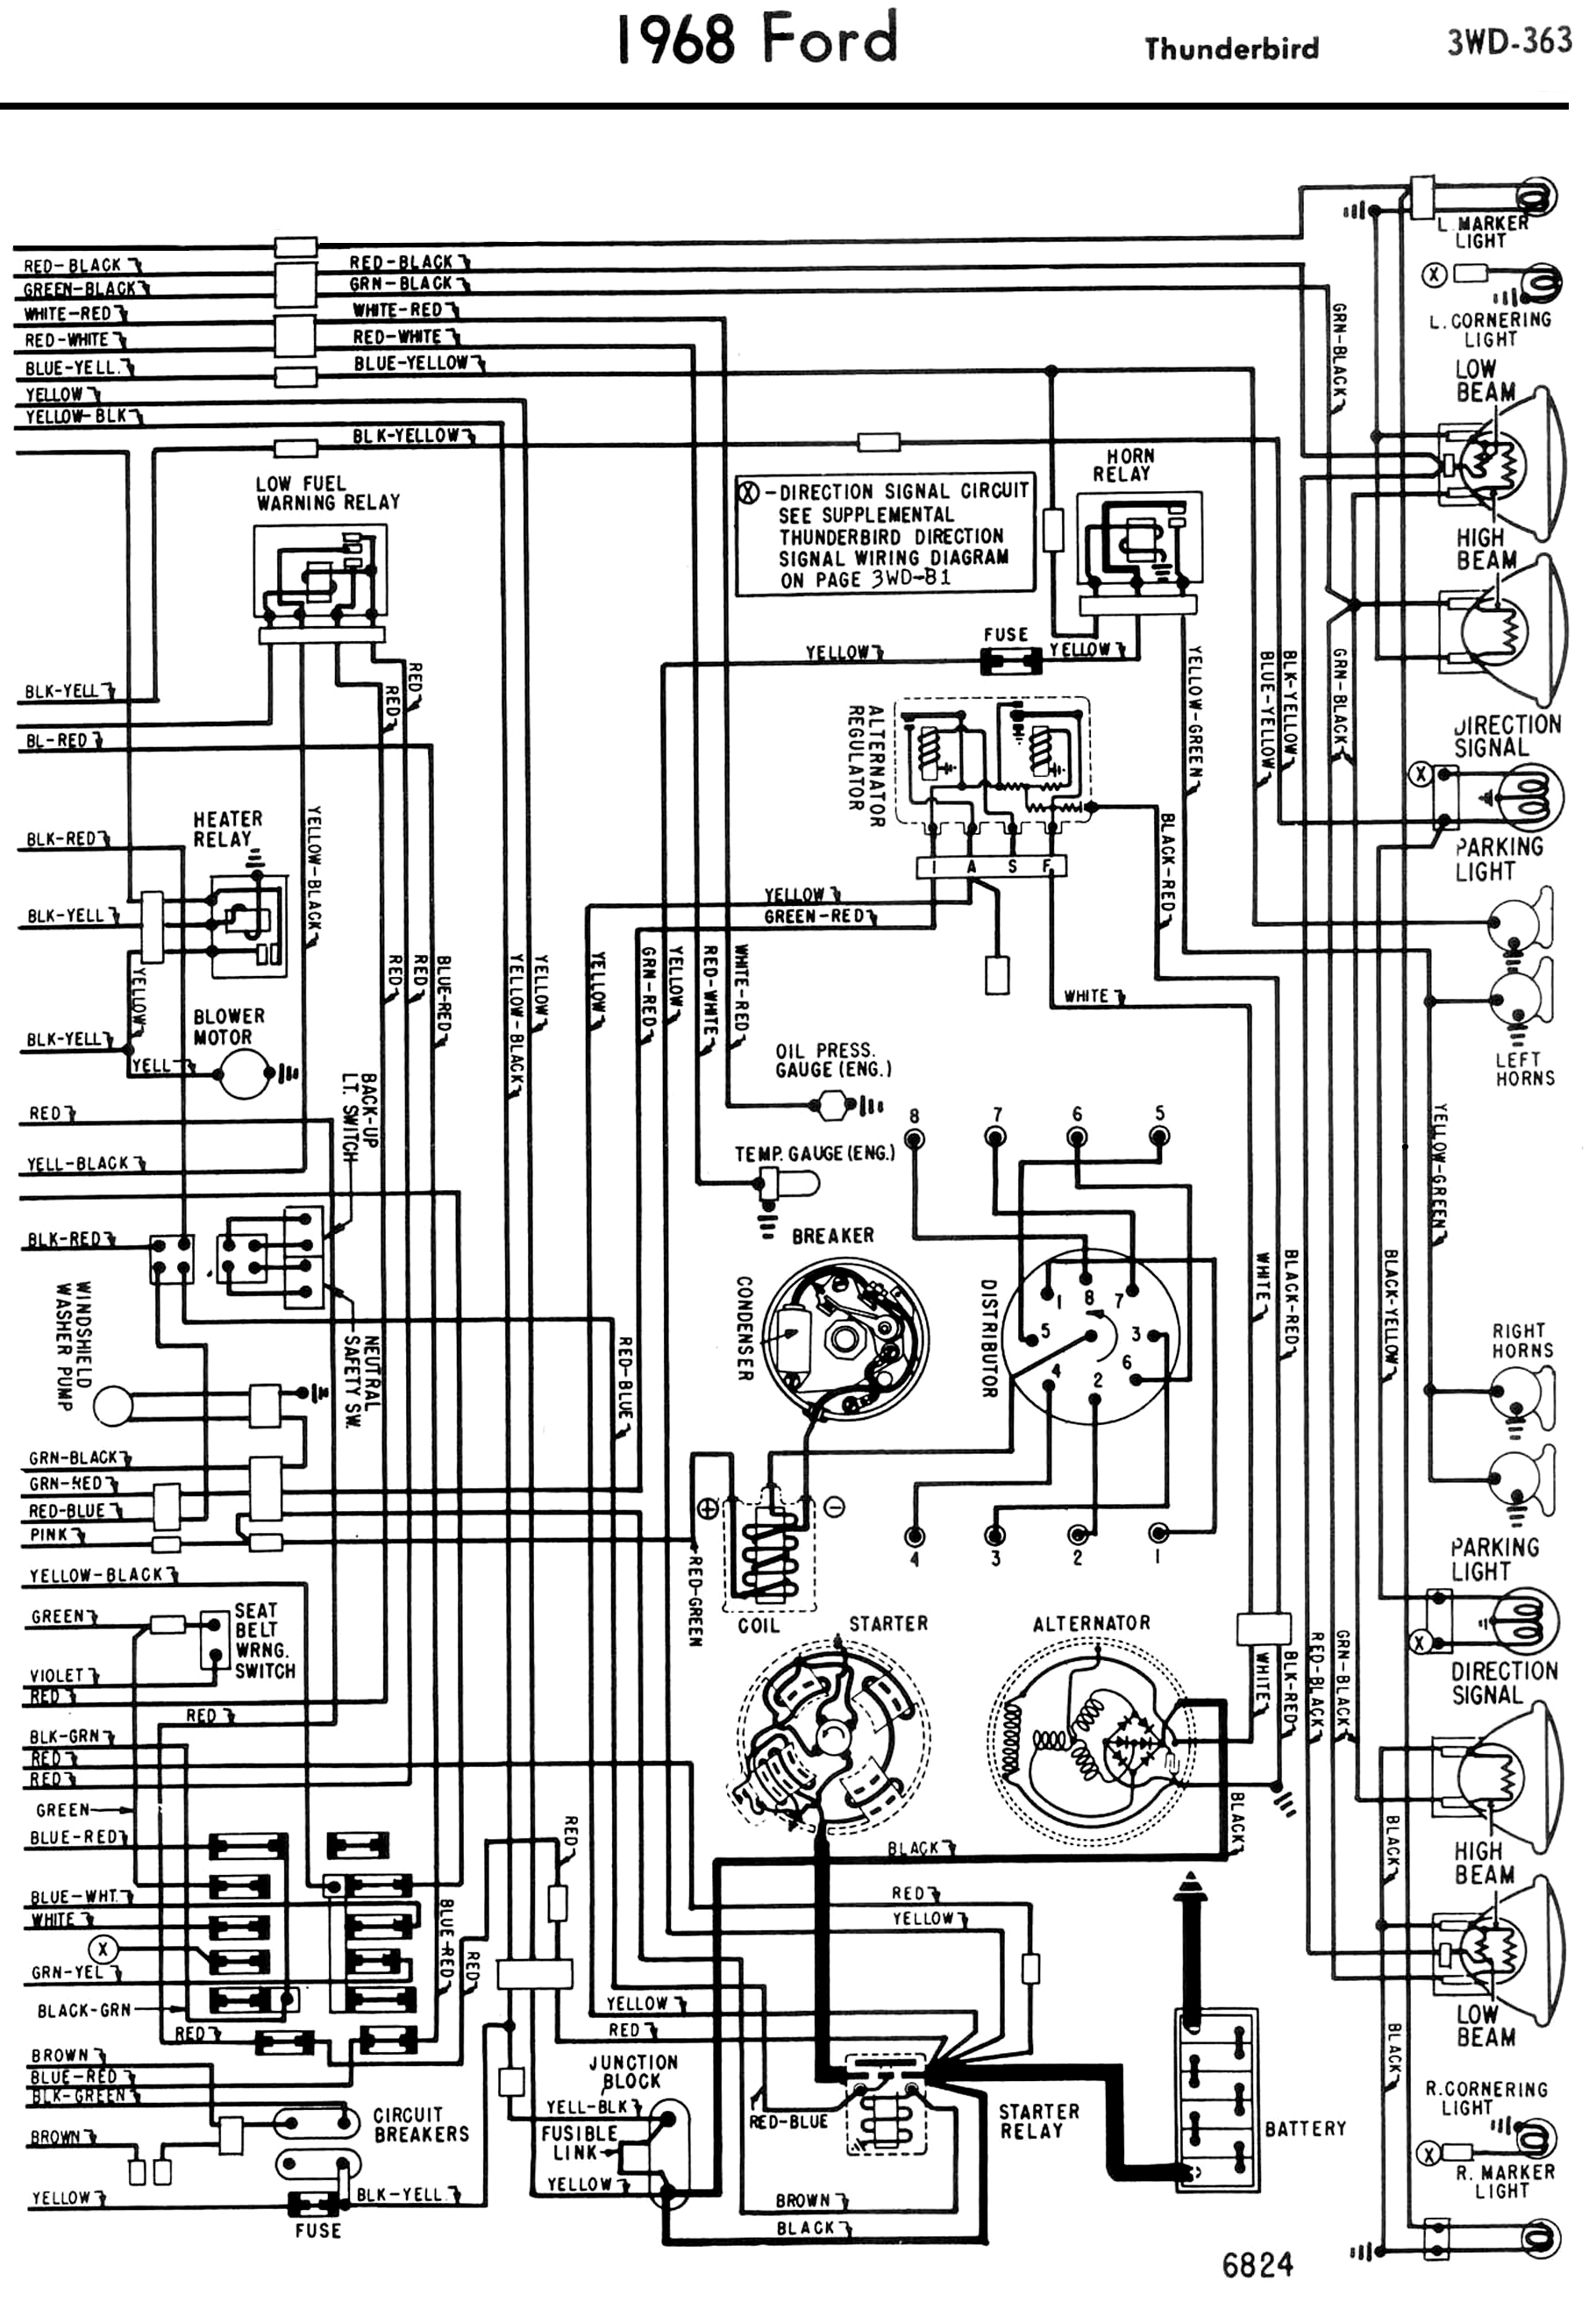 1955 Ford Fairlane Wiring Diagram Generator Library 1958 68 Electrical Schematics 1962 Thunderbird Light For 2003